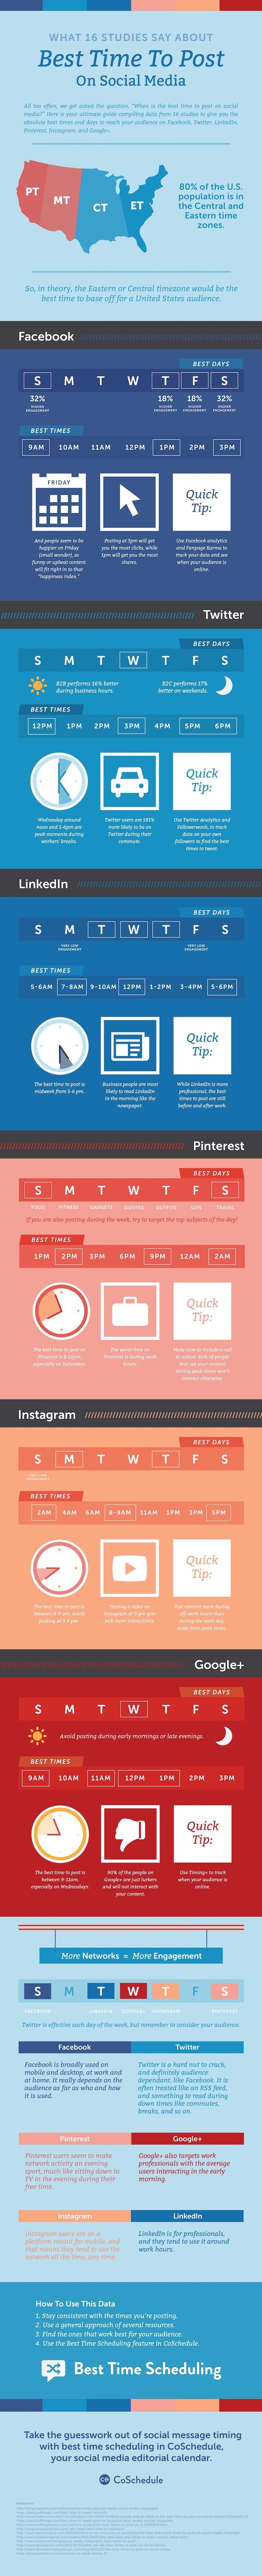 471 best Infographics images on Pinterest | Info graphics ...